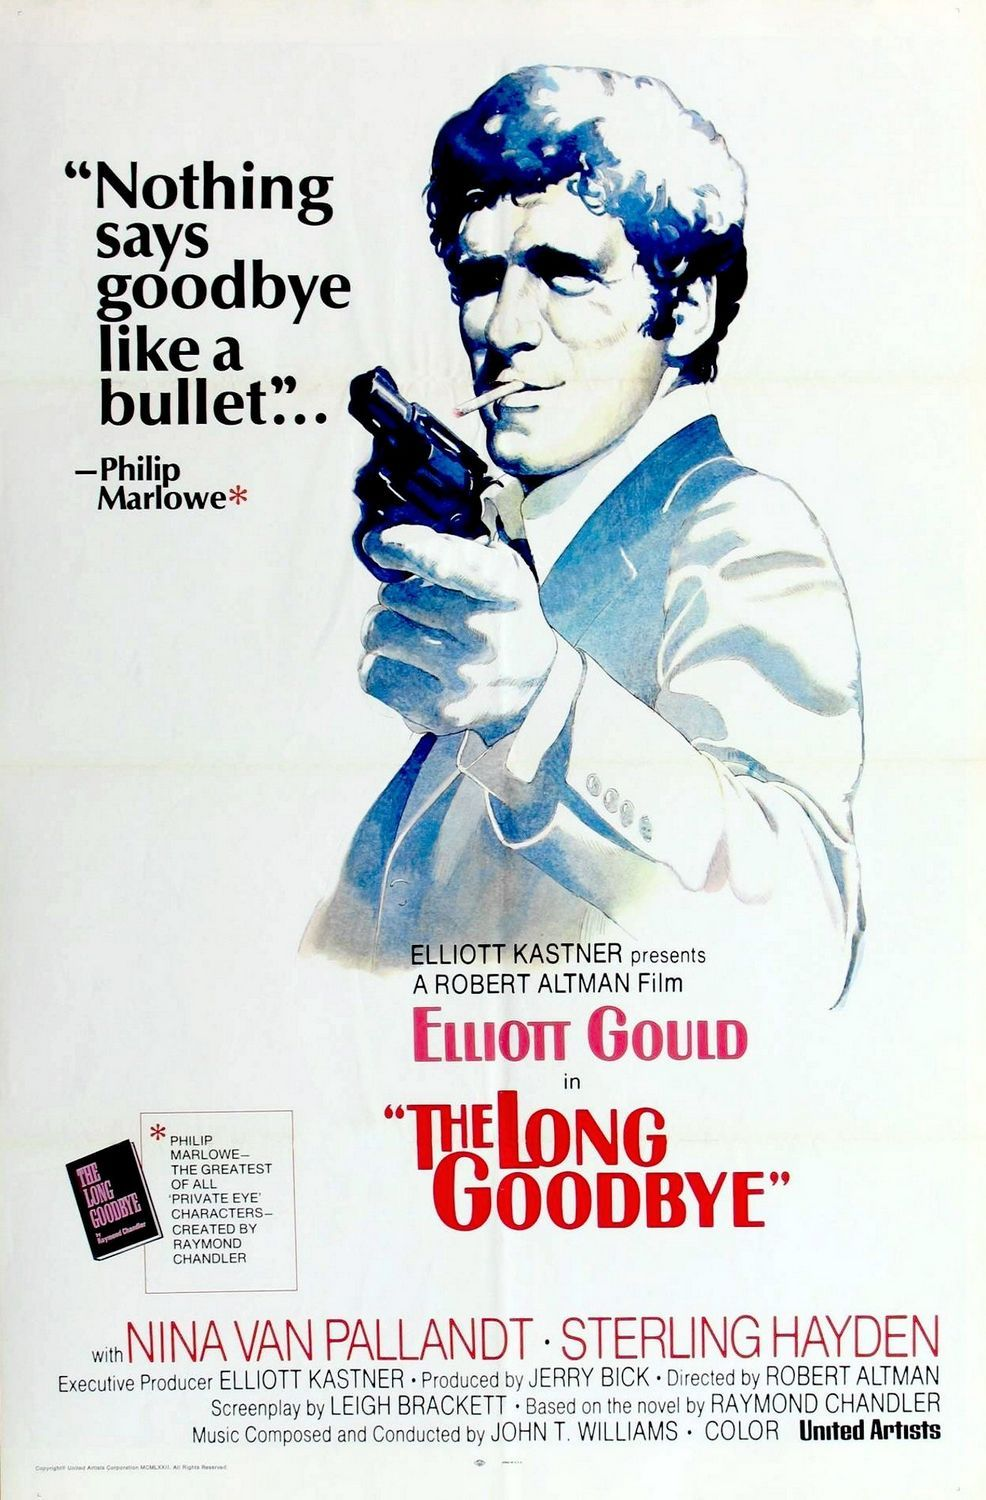 The Jackass Critics Podcast presents The Long Goodbye.